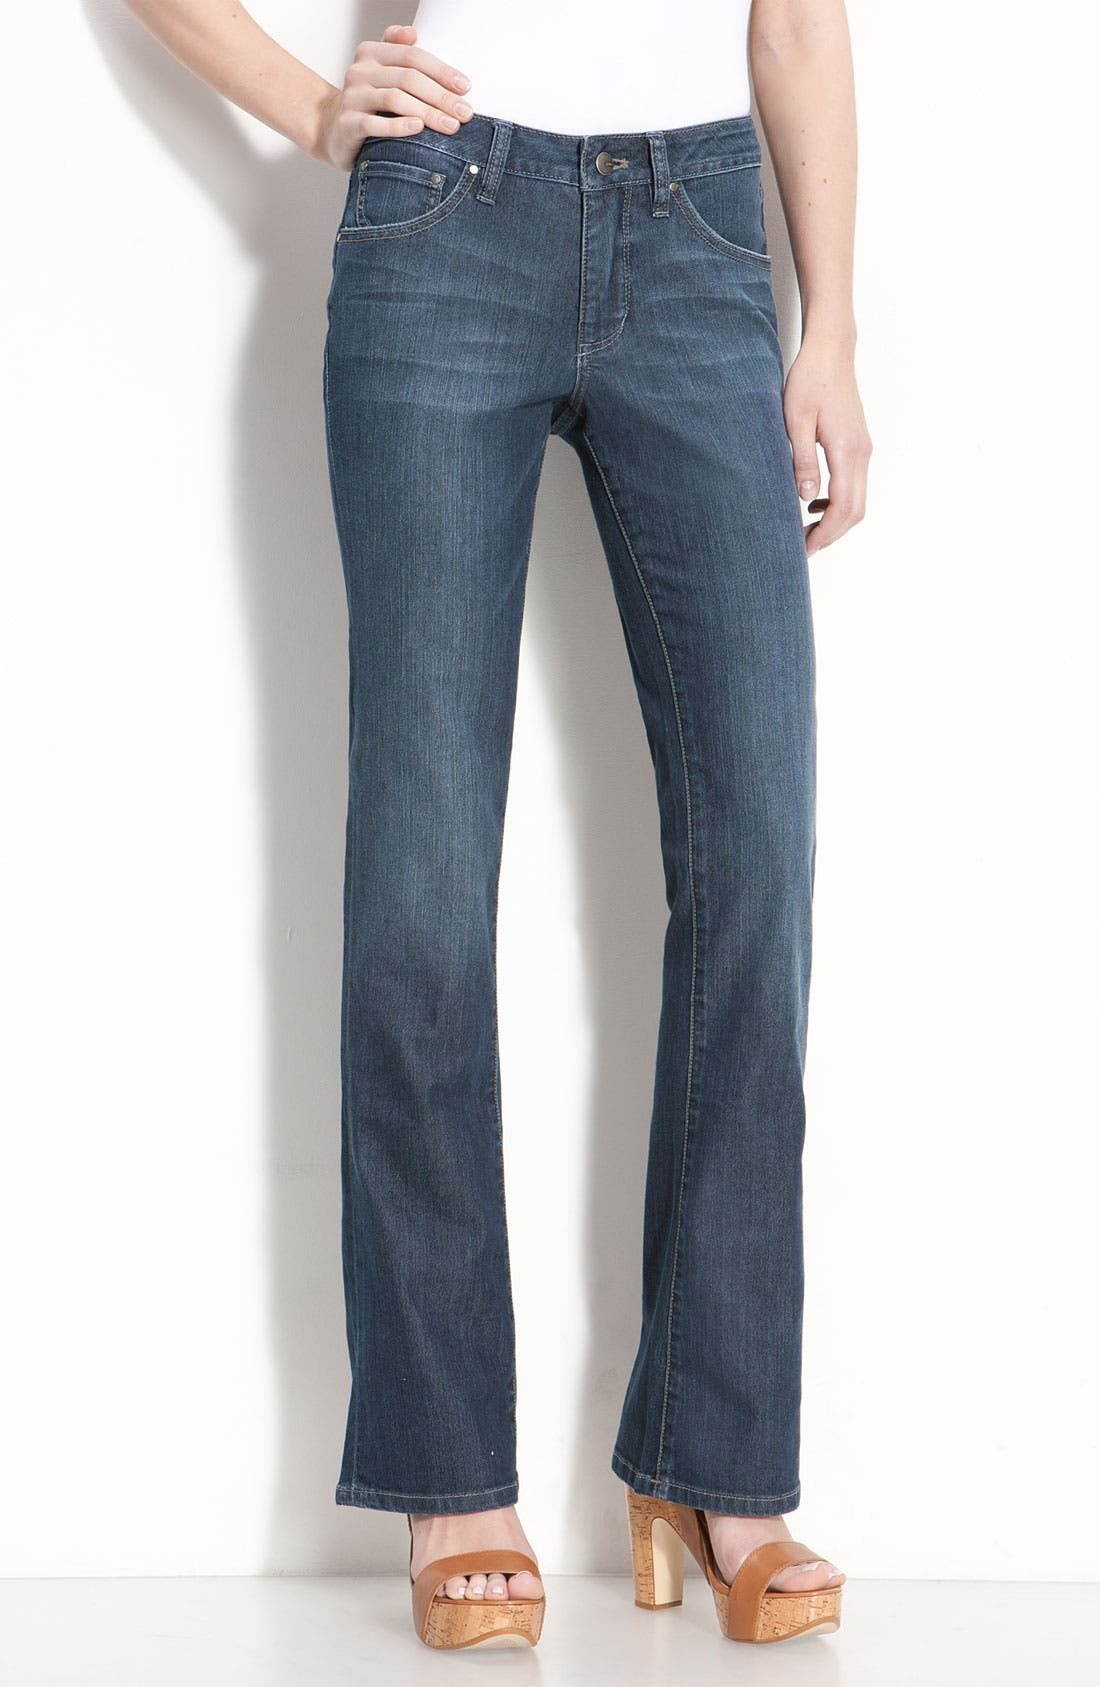 Main Image - Jag Jeans 'Trudie' Slim Flare Leg Jeans (Petite) (Online Exclusive)